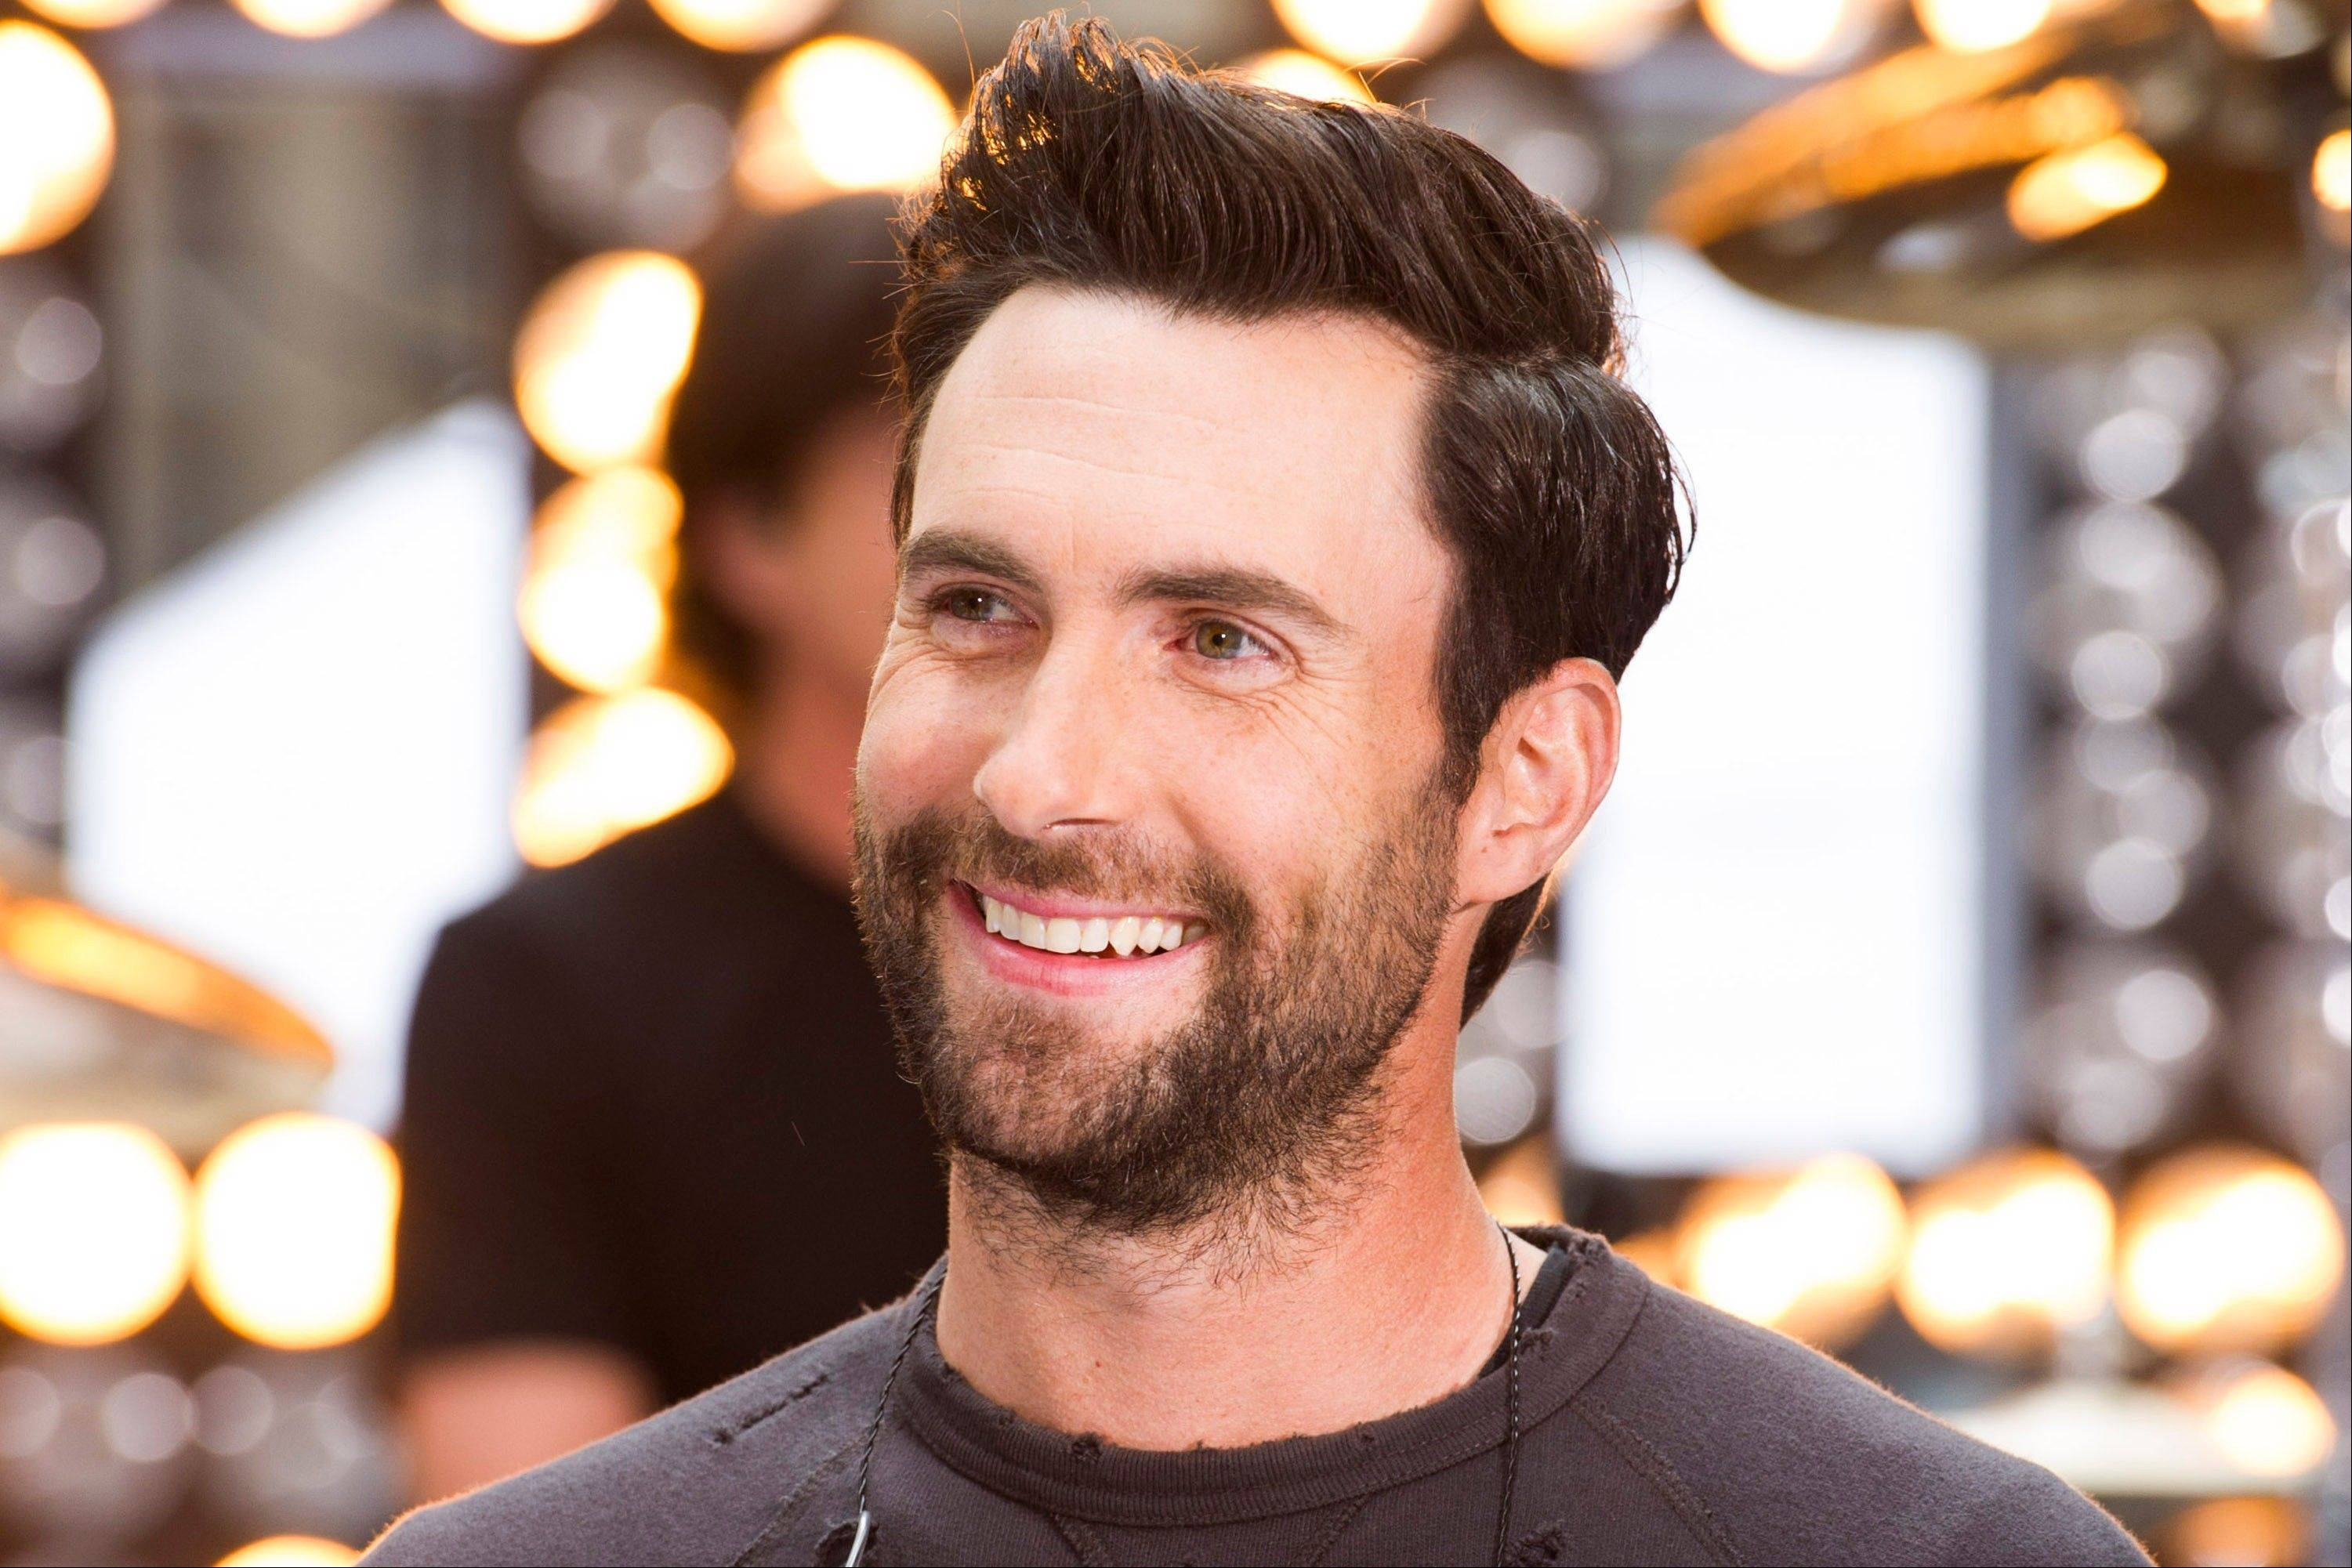 Maroon 5 lead singer Adam Levine has previewed his menswear line for Kmart. Henley Ts, plaid button-down shirts, baseball caps and a camouflage cargo jacket were part of the collection that will land in 500 stores on Oct. 1.